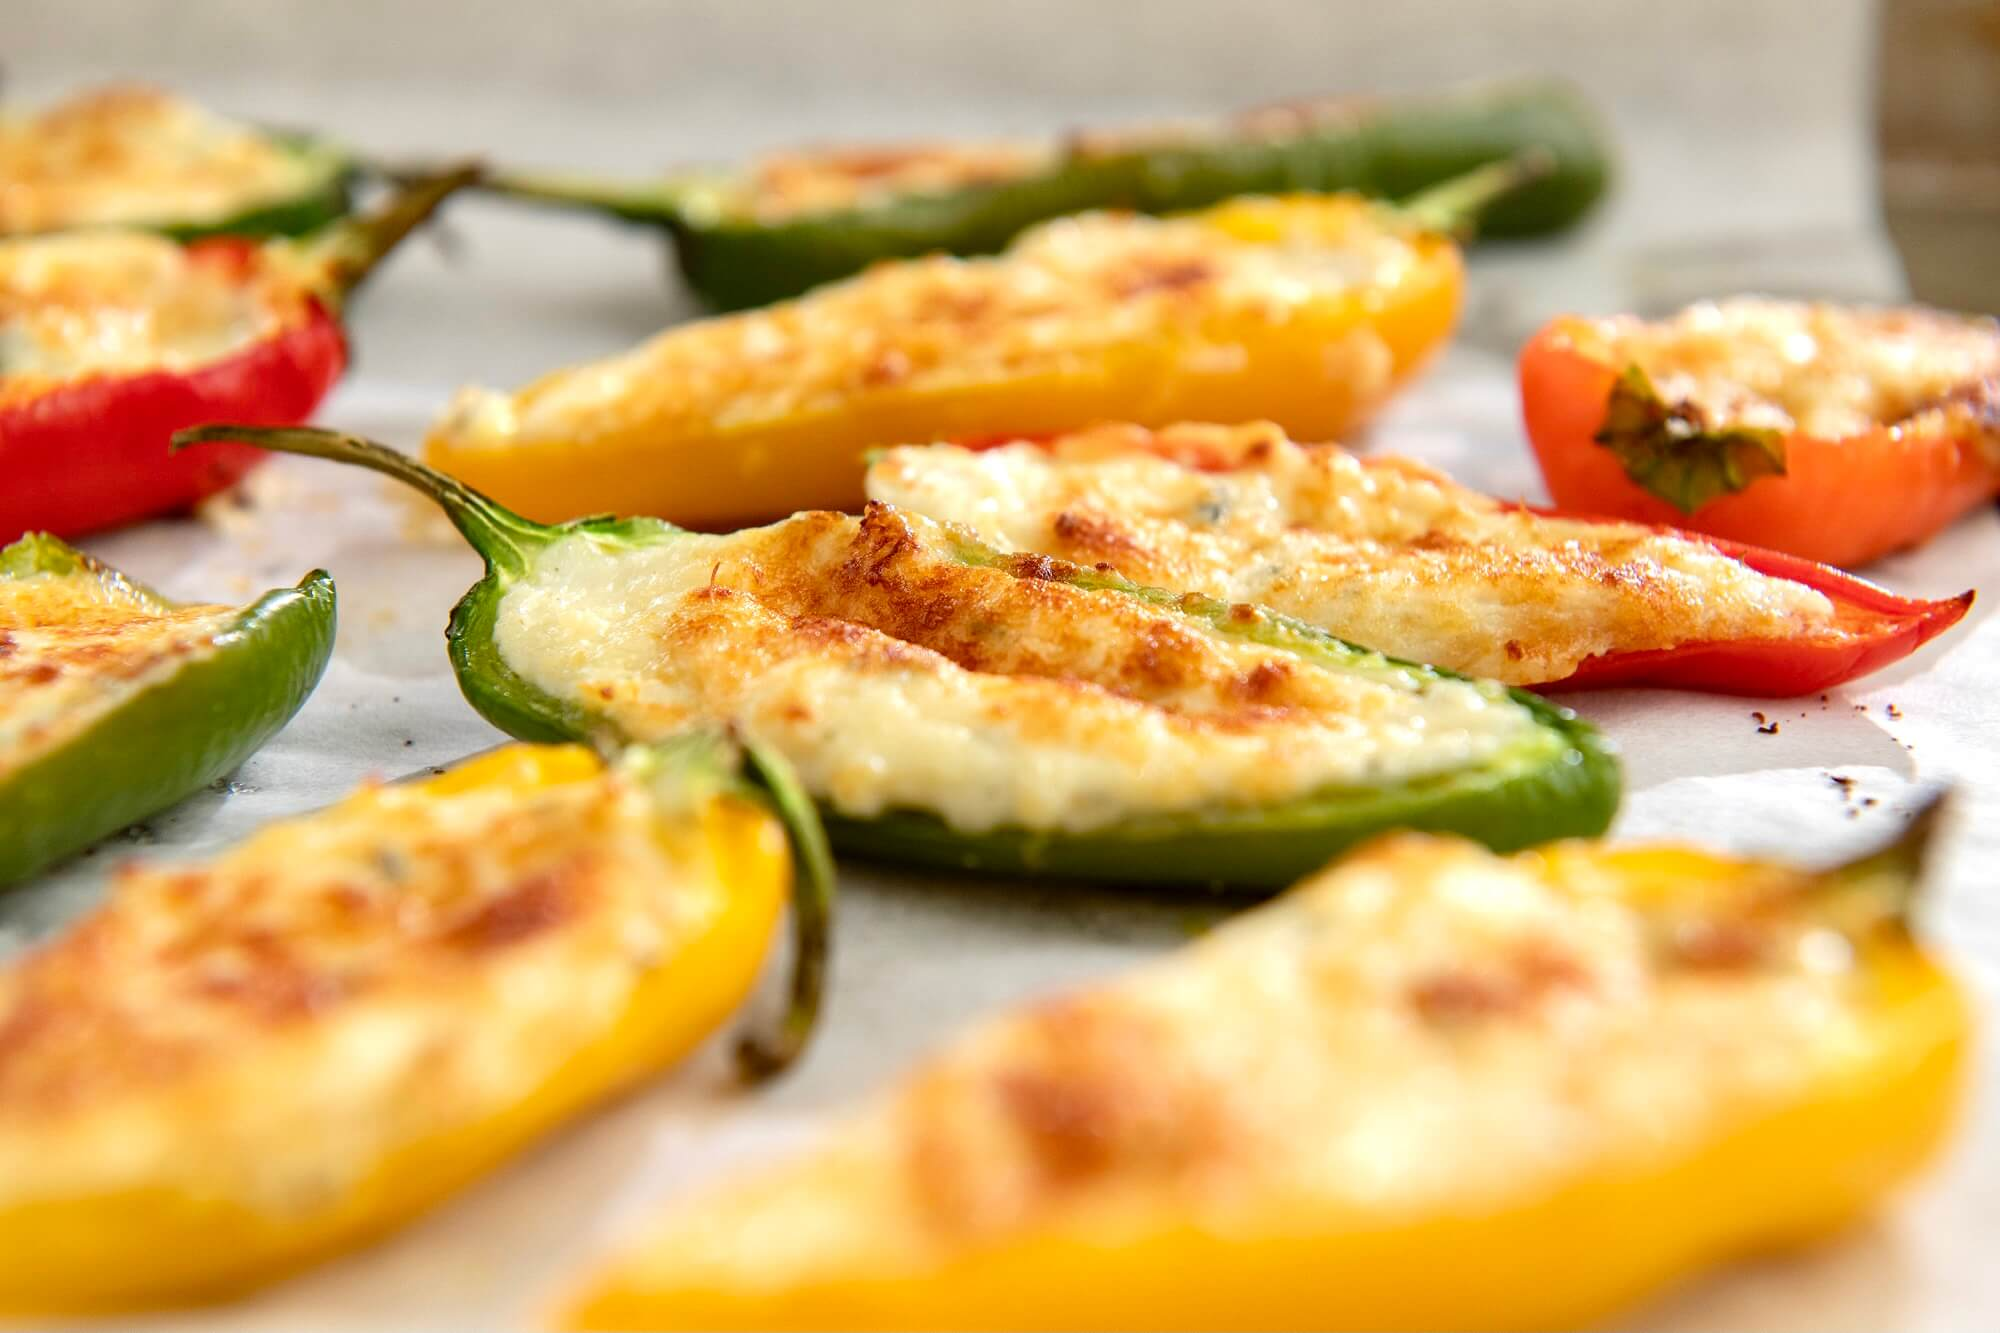 Easy Cheesy Mini Peppers are a delicious appetizer that are essentially a baked, less spicy version of a jalapeño popper...but you can make them as jalapeño poppers if you prefer!